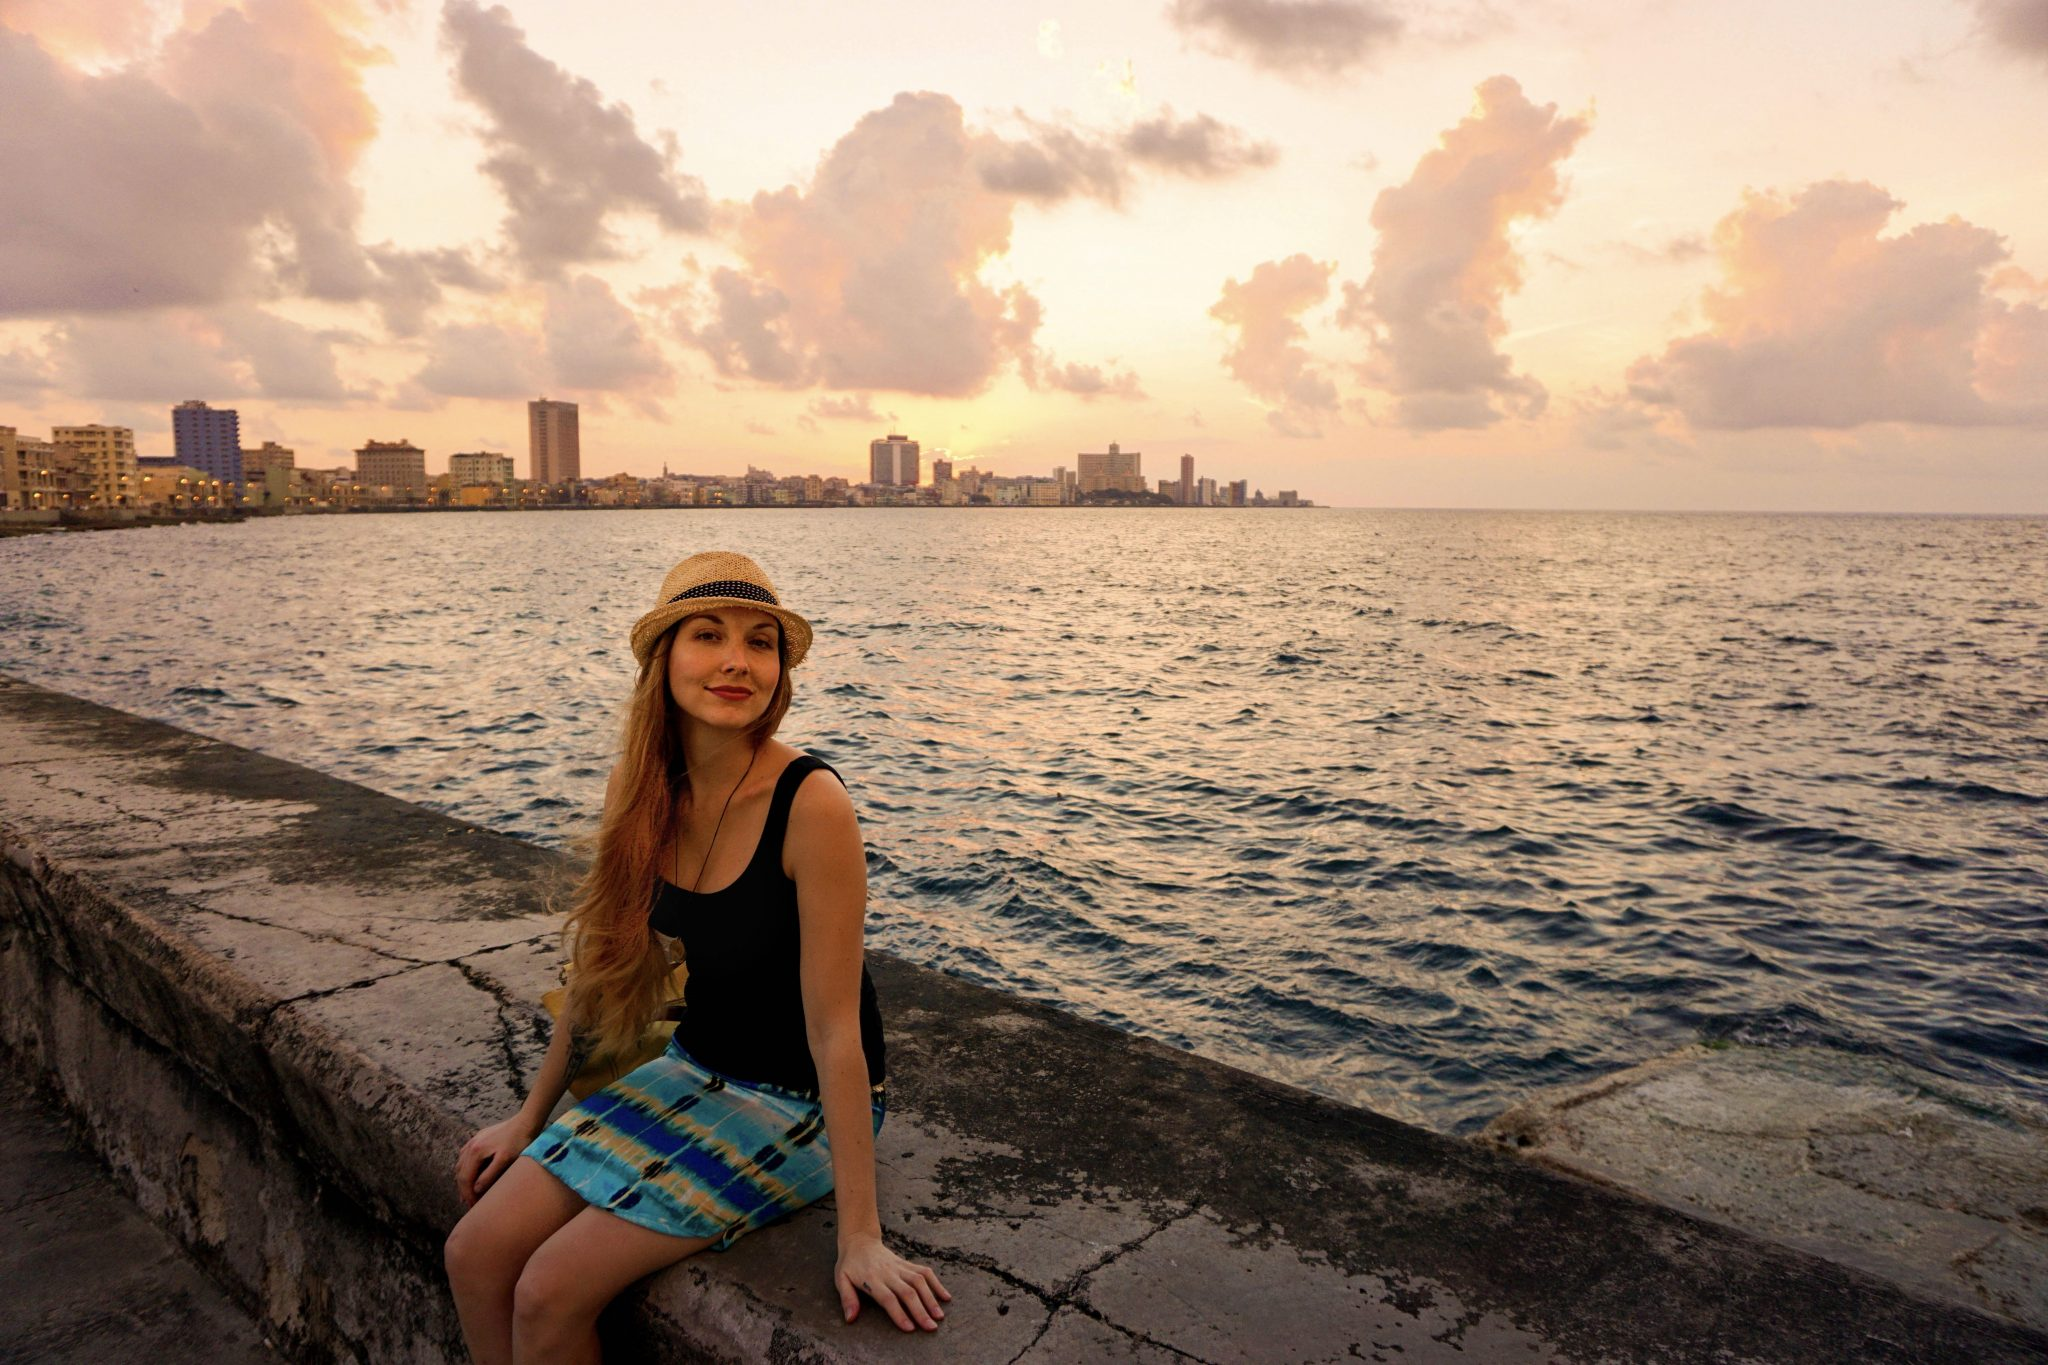 Havana, Cuba, malecon, boardwalk, sunset, ocean